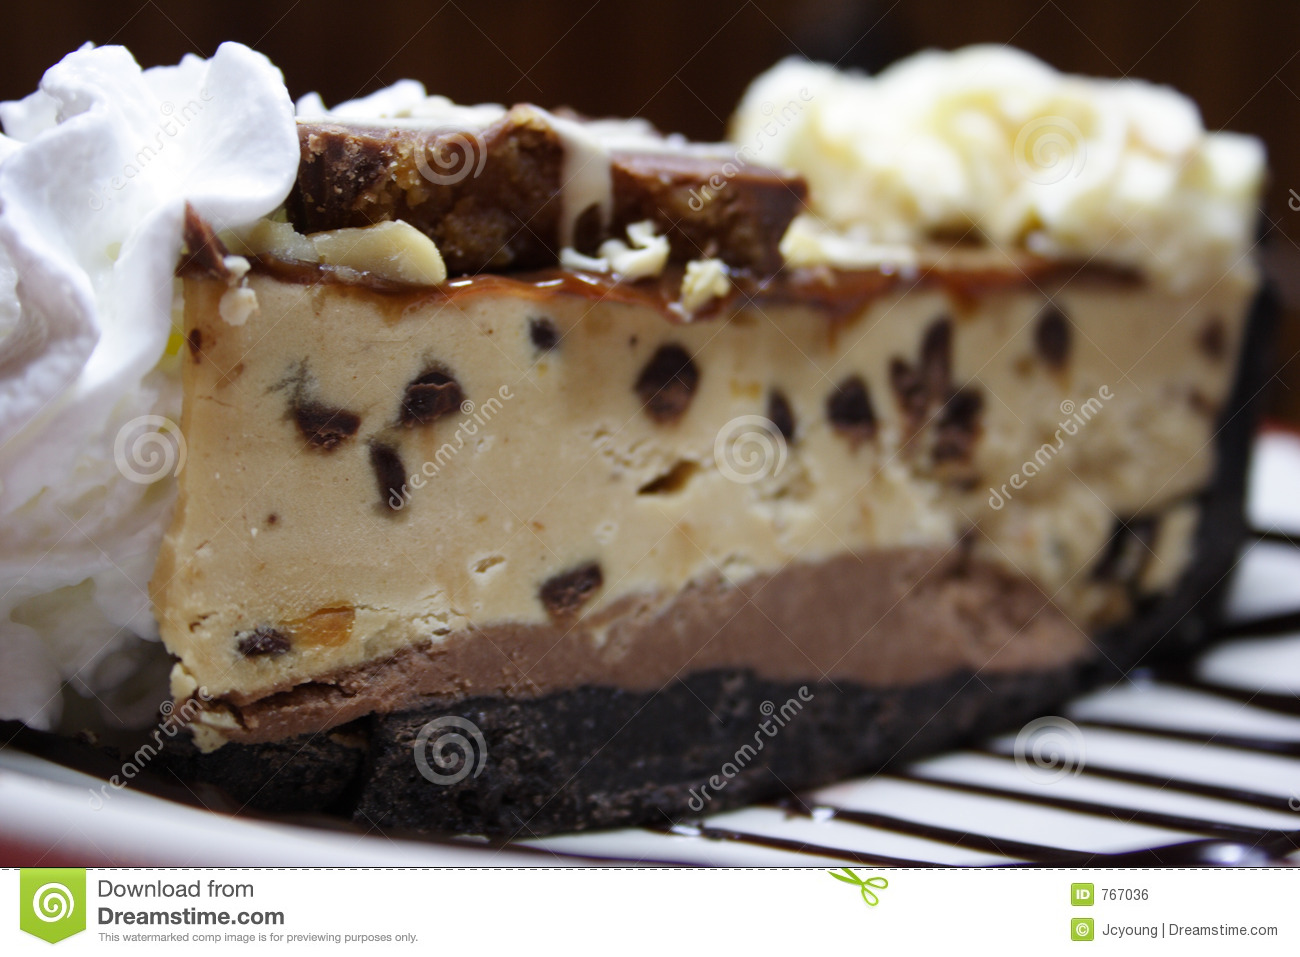 Slice of Chocolate Peanut Butter Pie